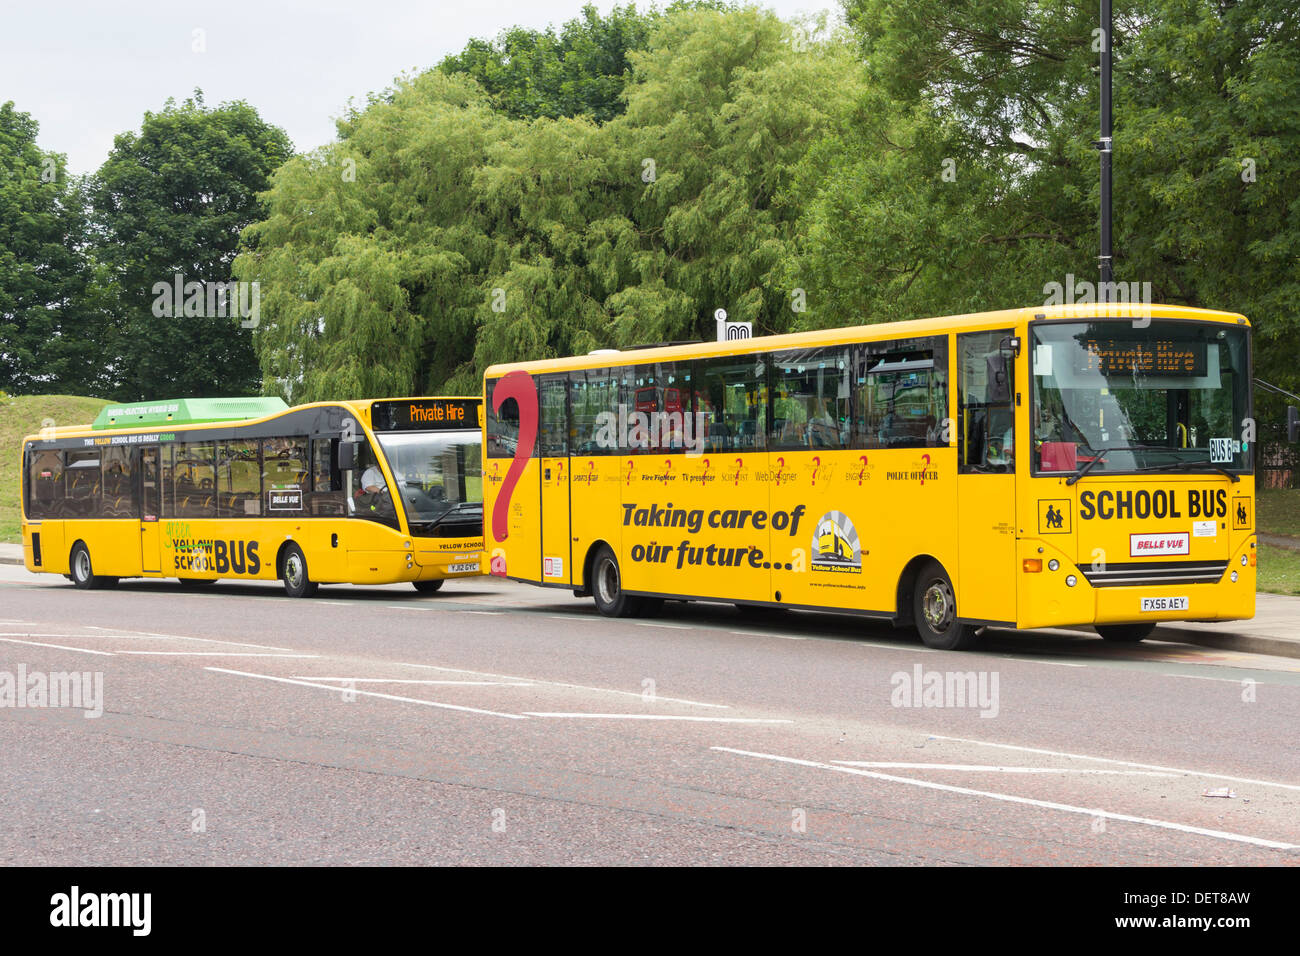 Two yellow school buses (UK variety) in Manchester. The rear bus is a Optare Versa Hybrid low diesel/electric emission vehicle. - Stock Image